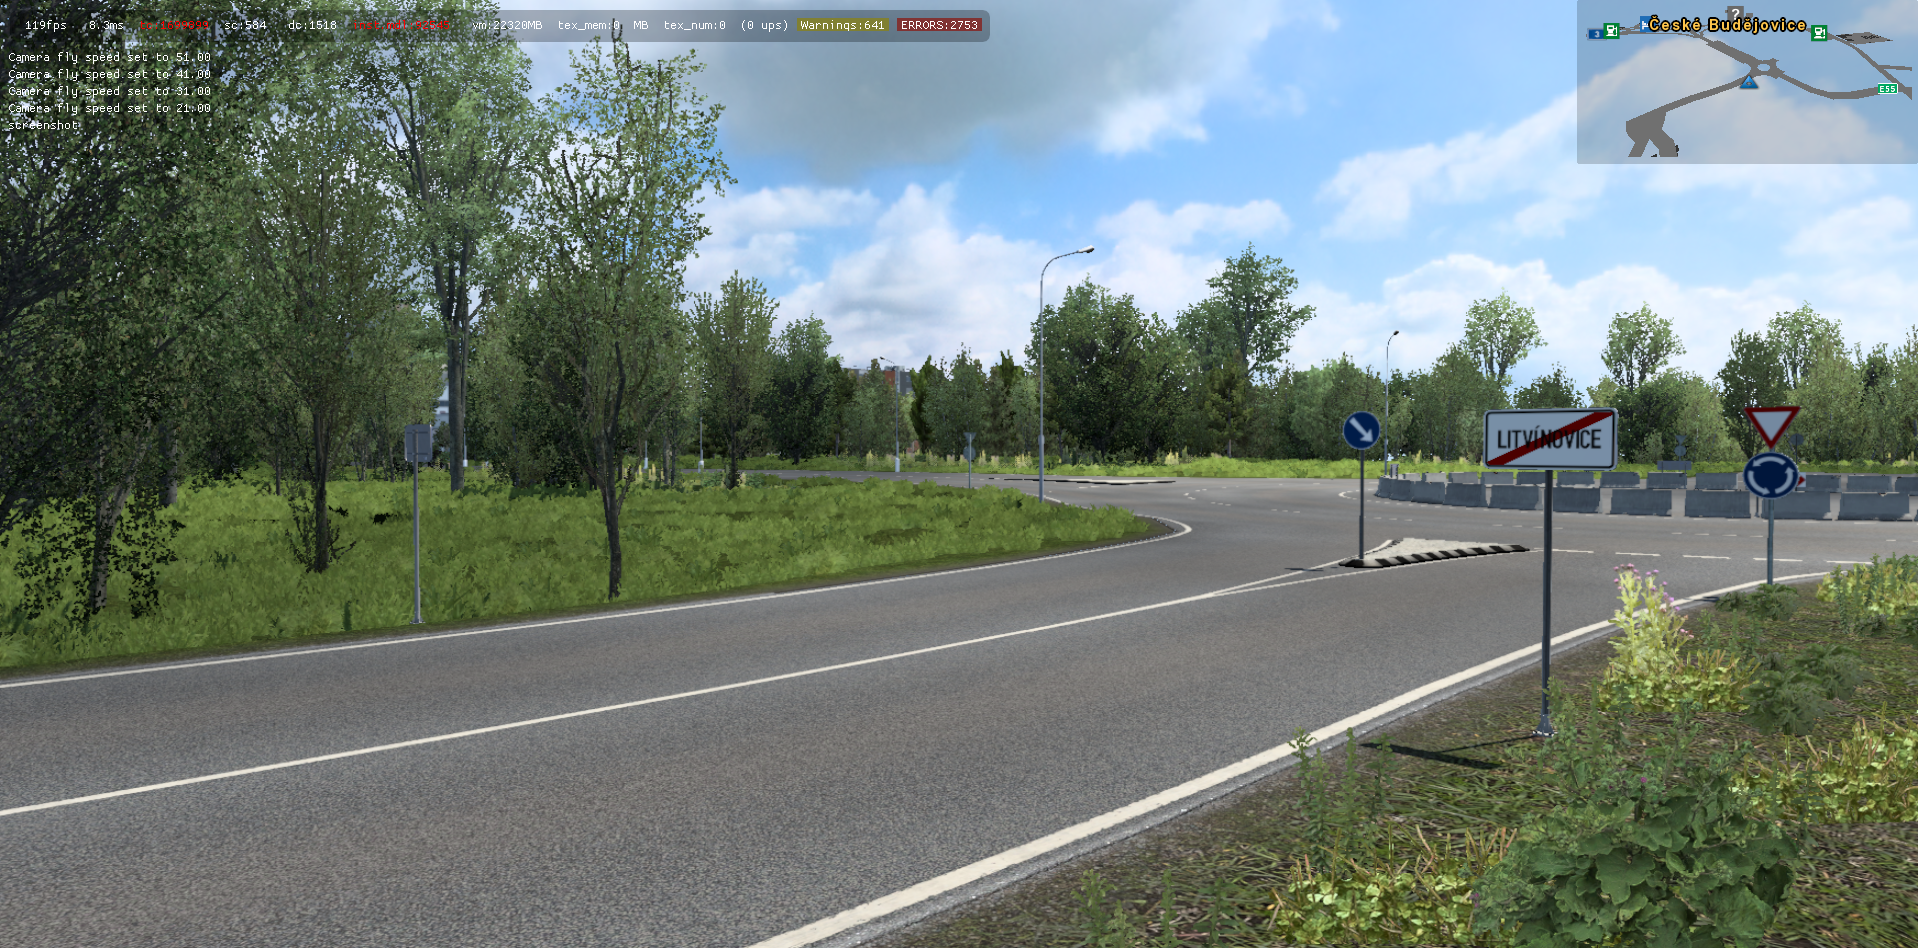 ets2_20210821_204902_00.png